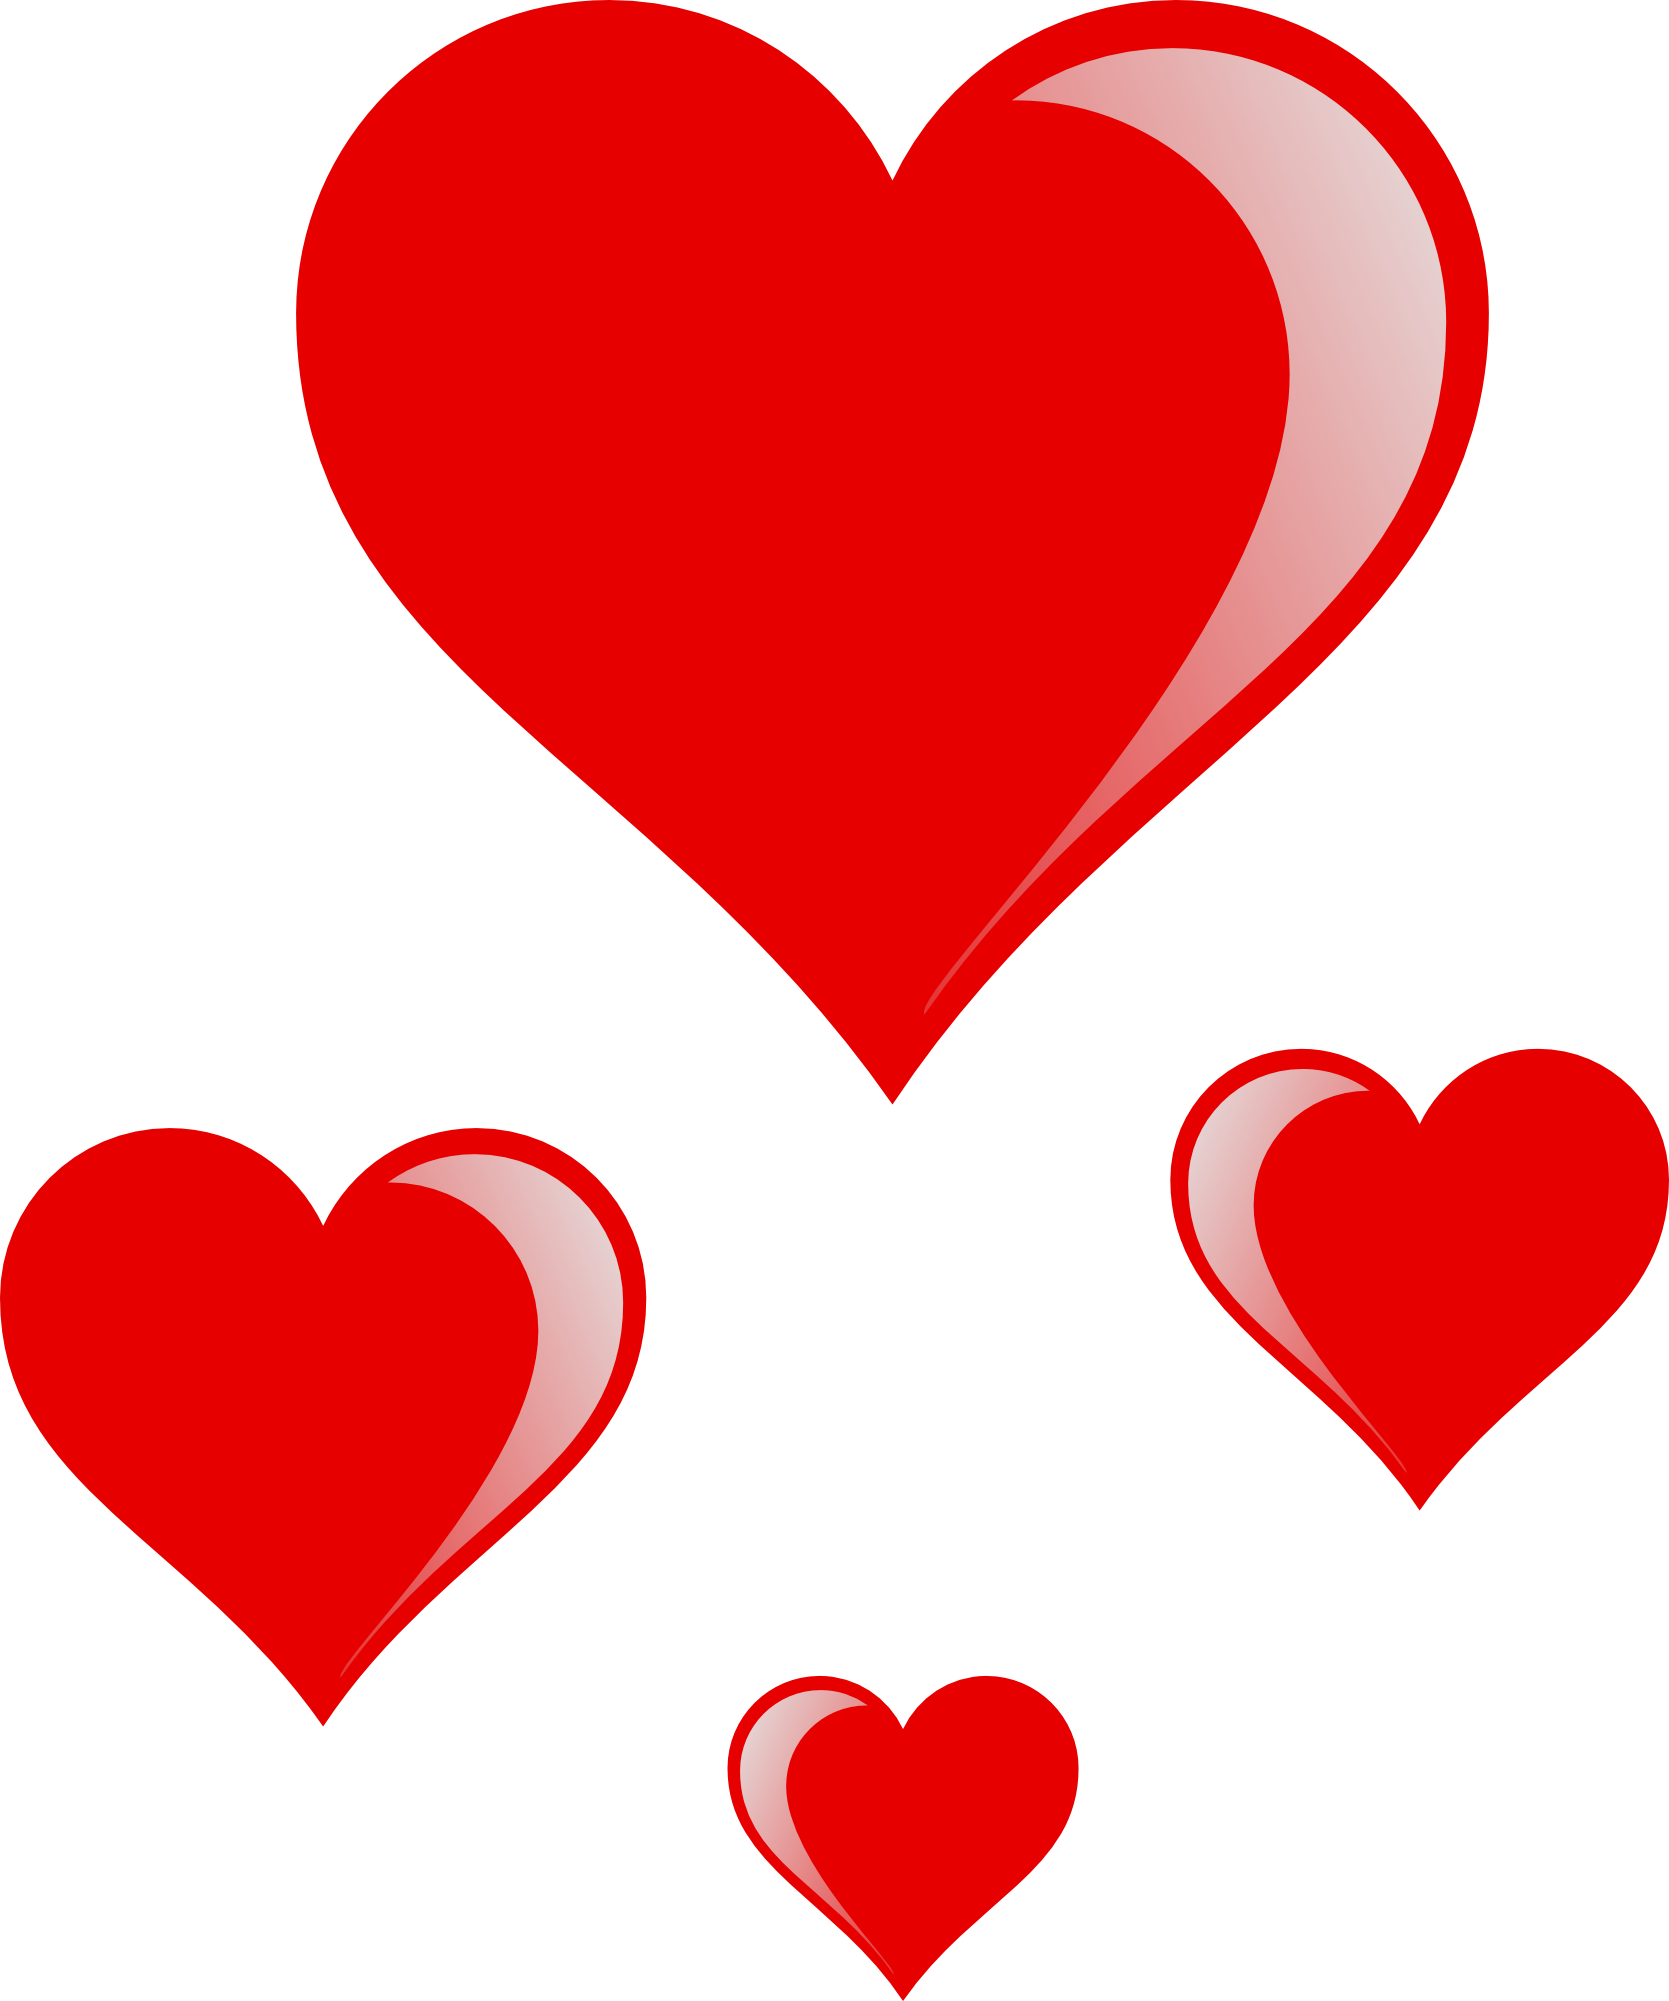 Hearts clipart man. Valentine heart cluster px